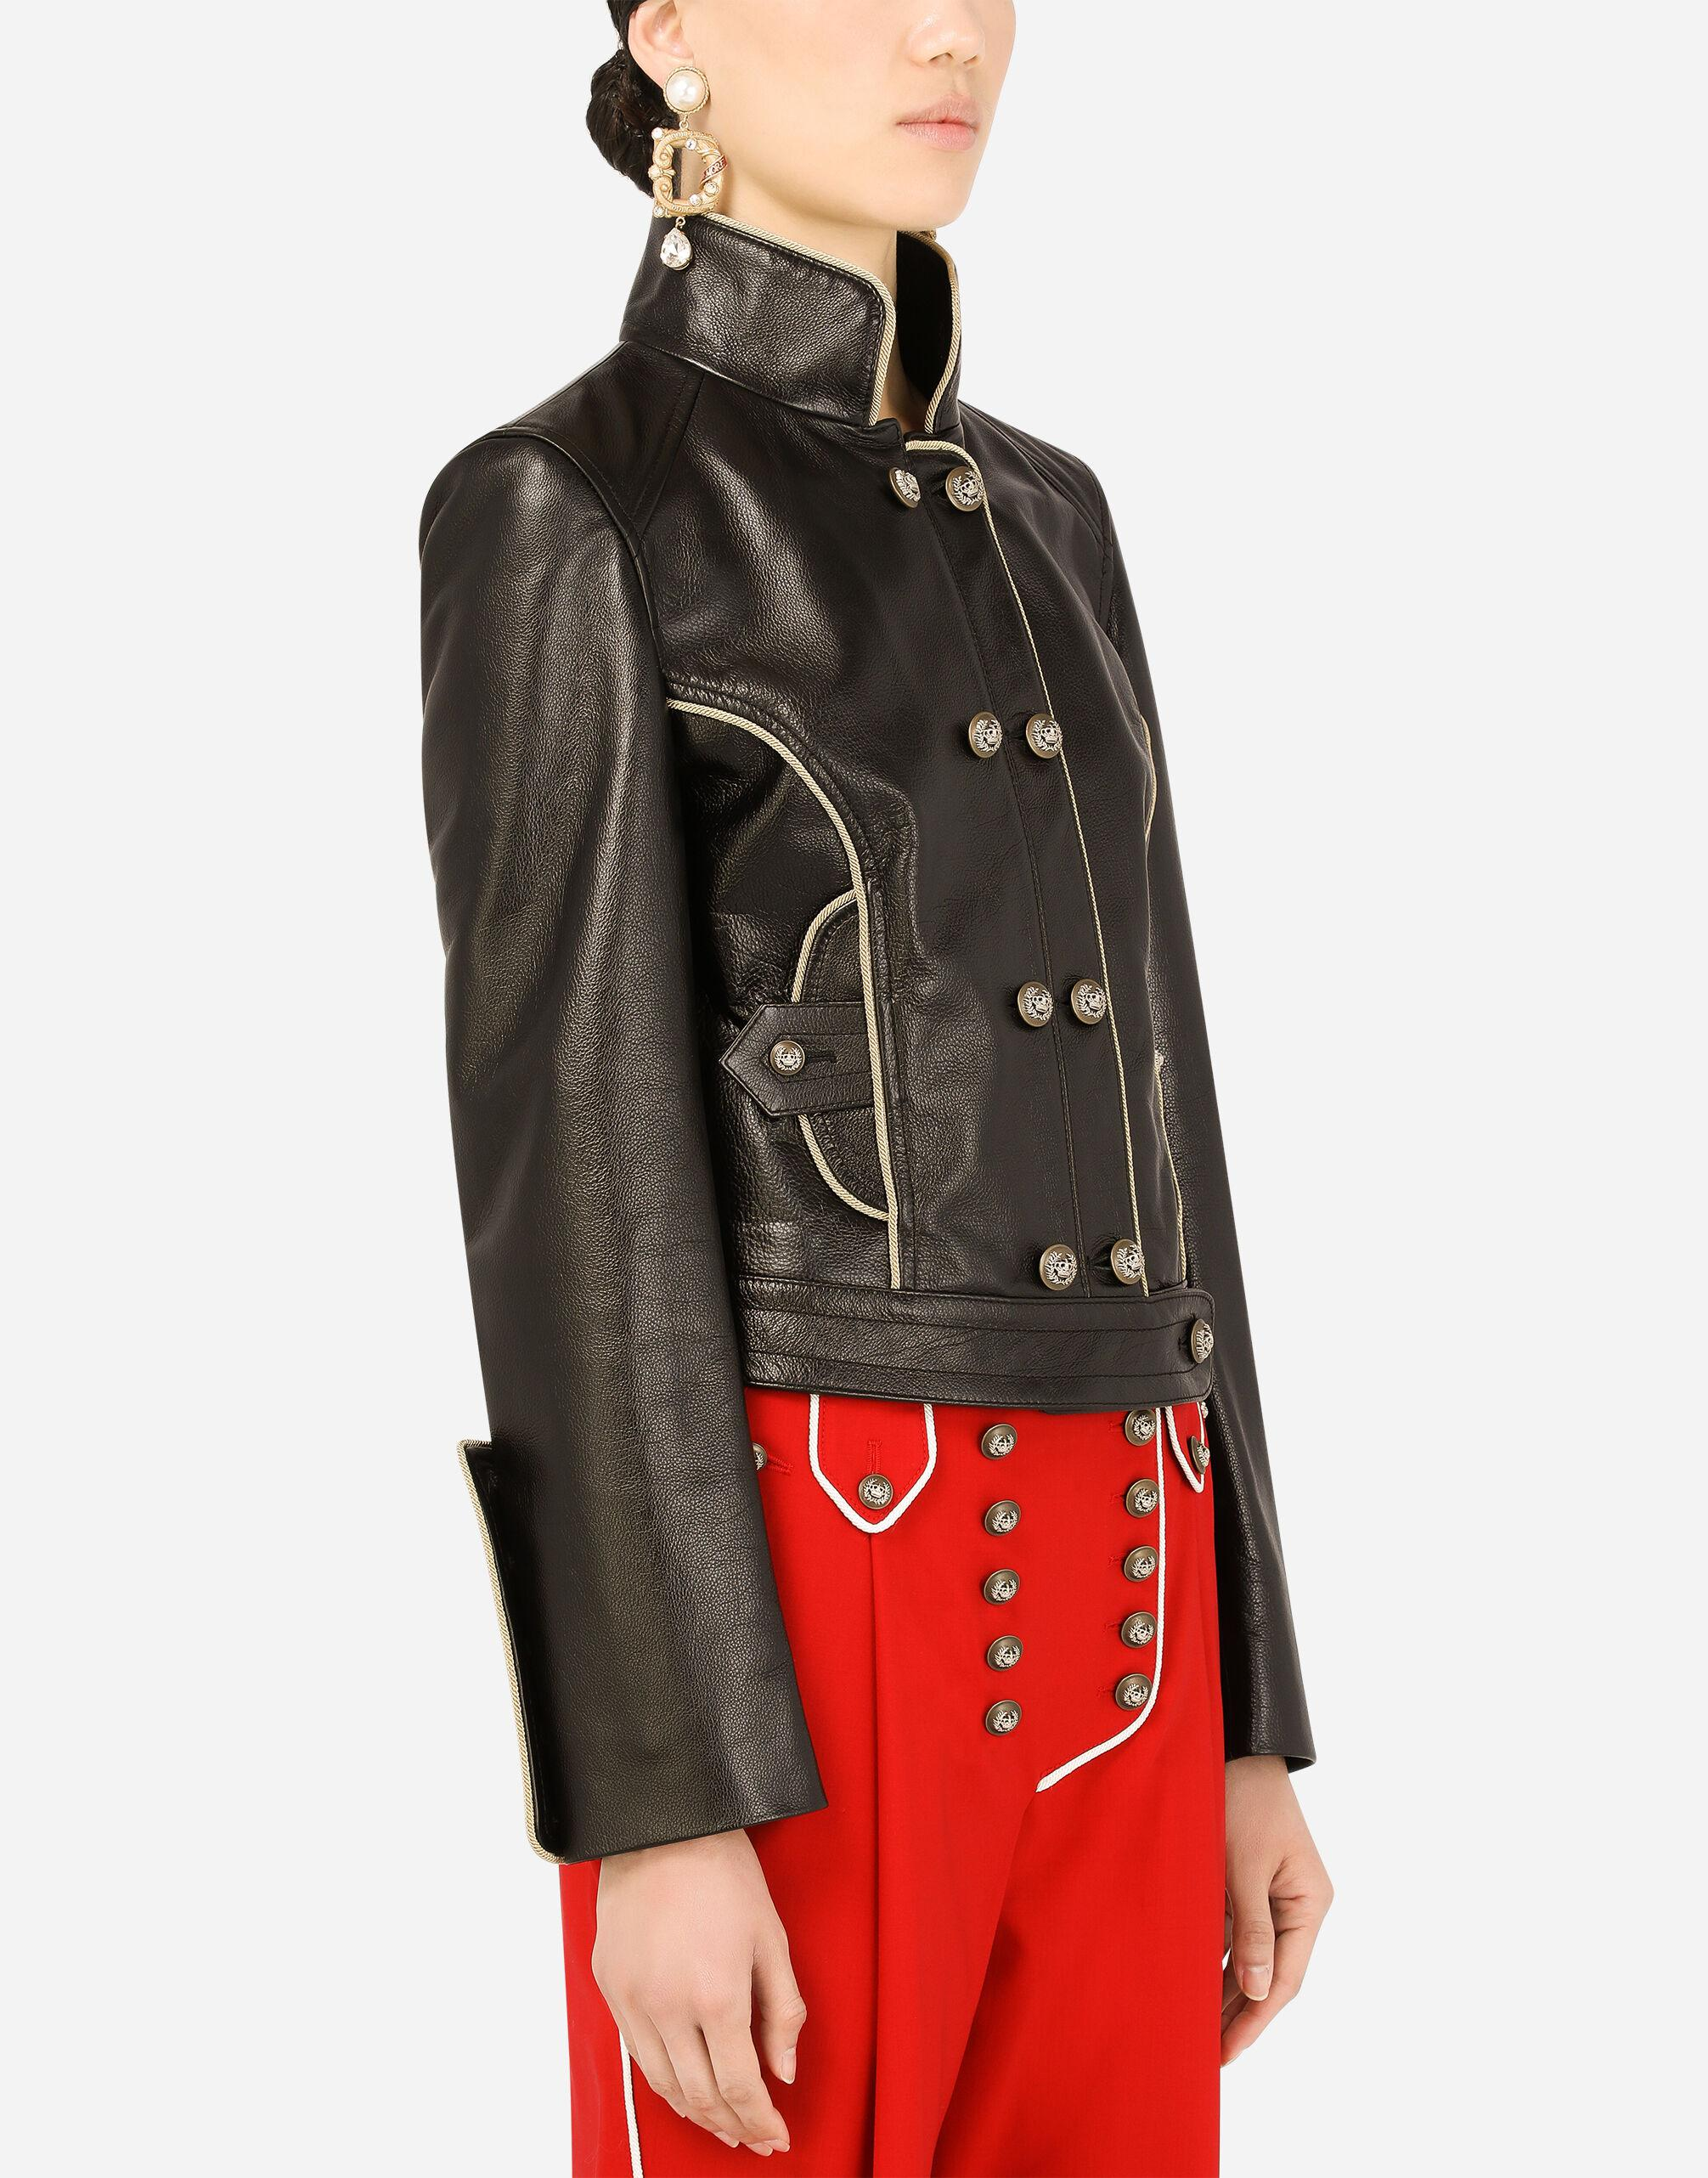 Leather biker jacket with heraldic buttons 2